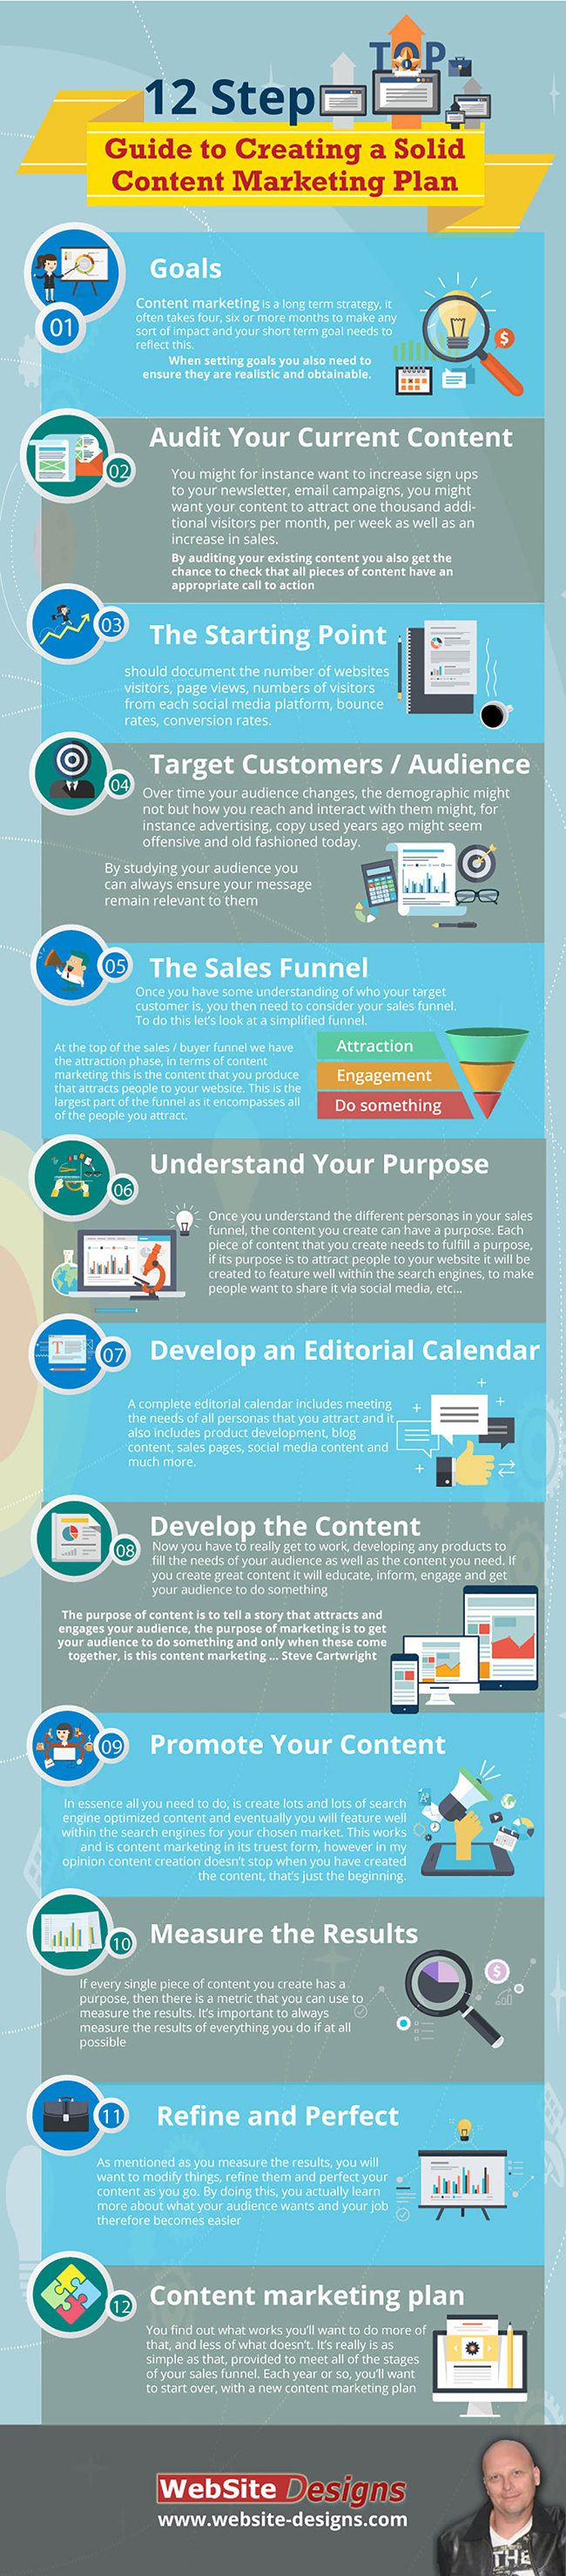 How To Create a Solid Content Marketing Plan!